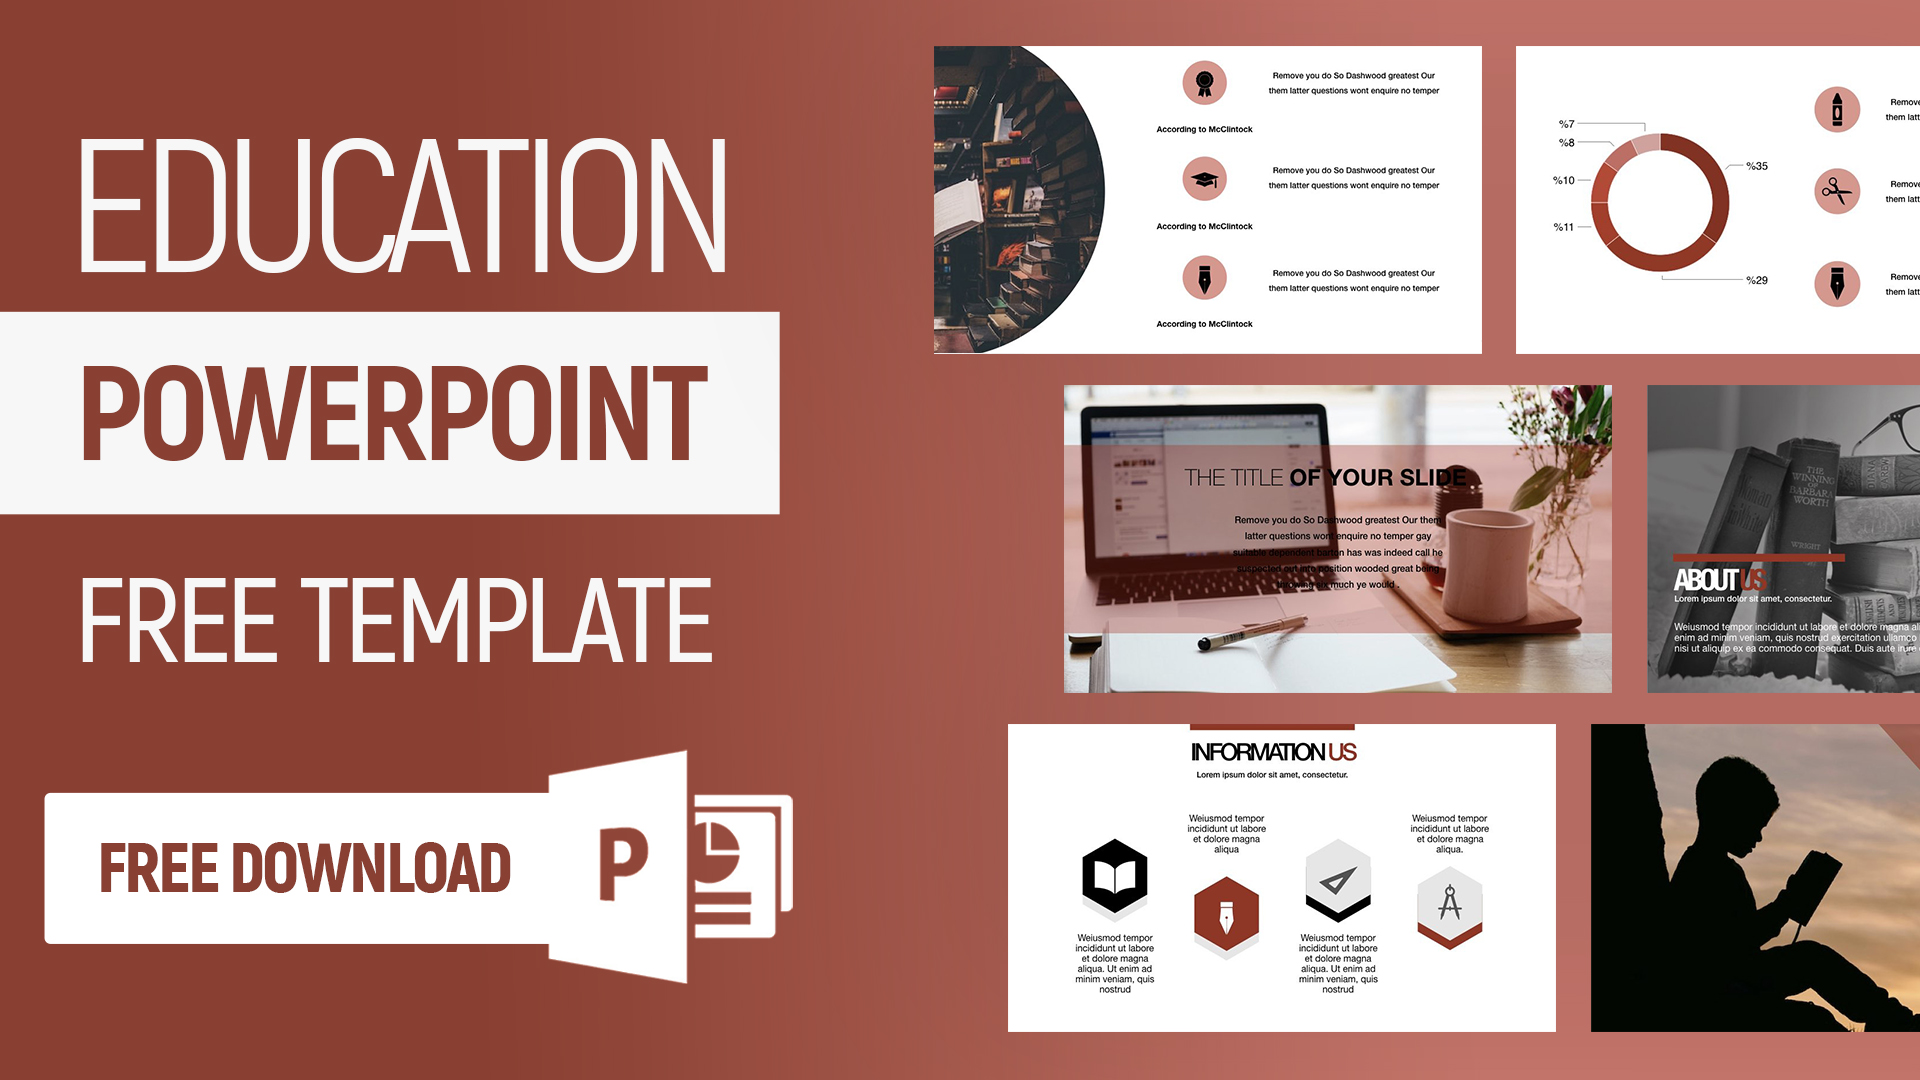 Education Free Powerpoint Presentation Template 2020 Template7